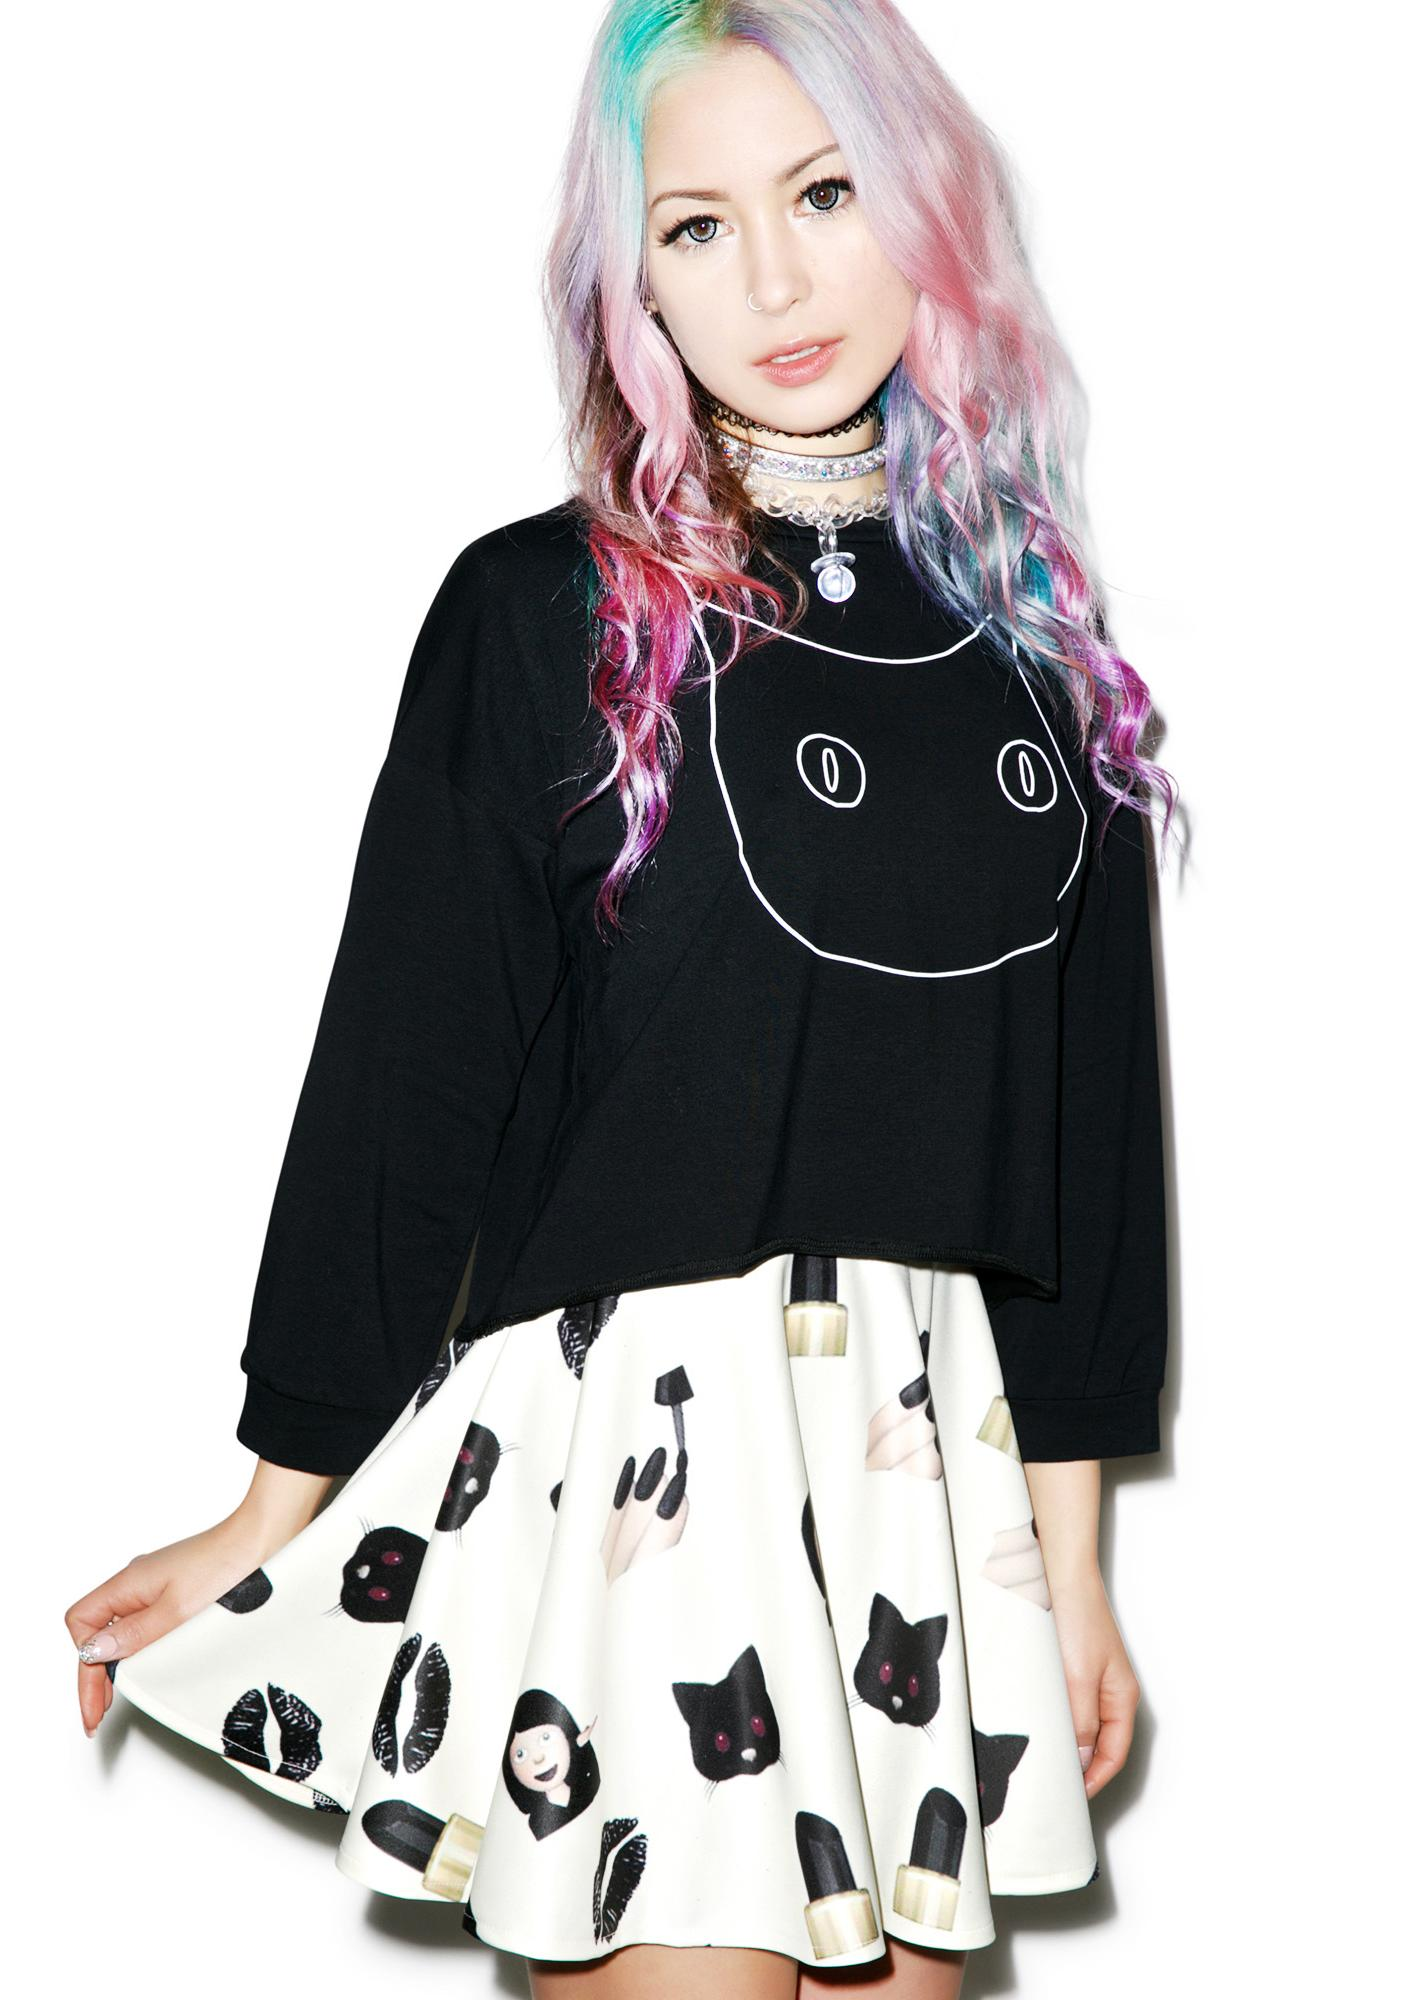 O Mighty Badass Bish Skater Skirt